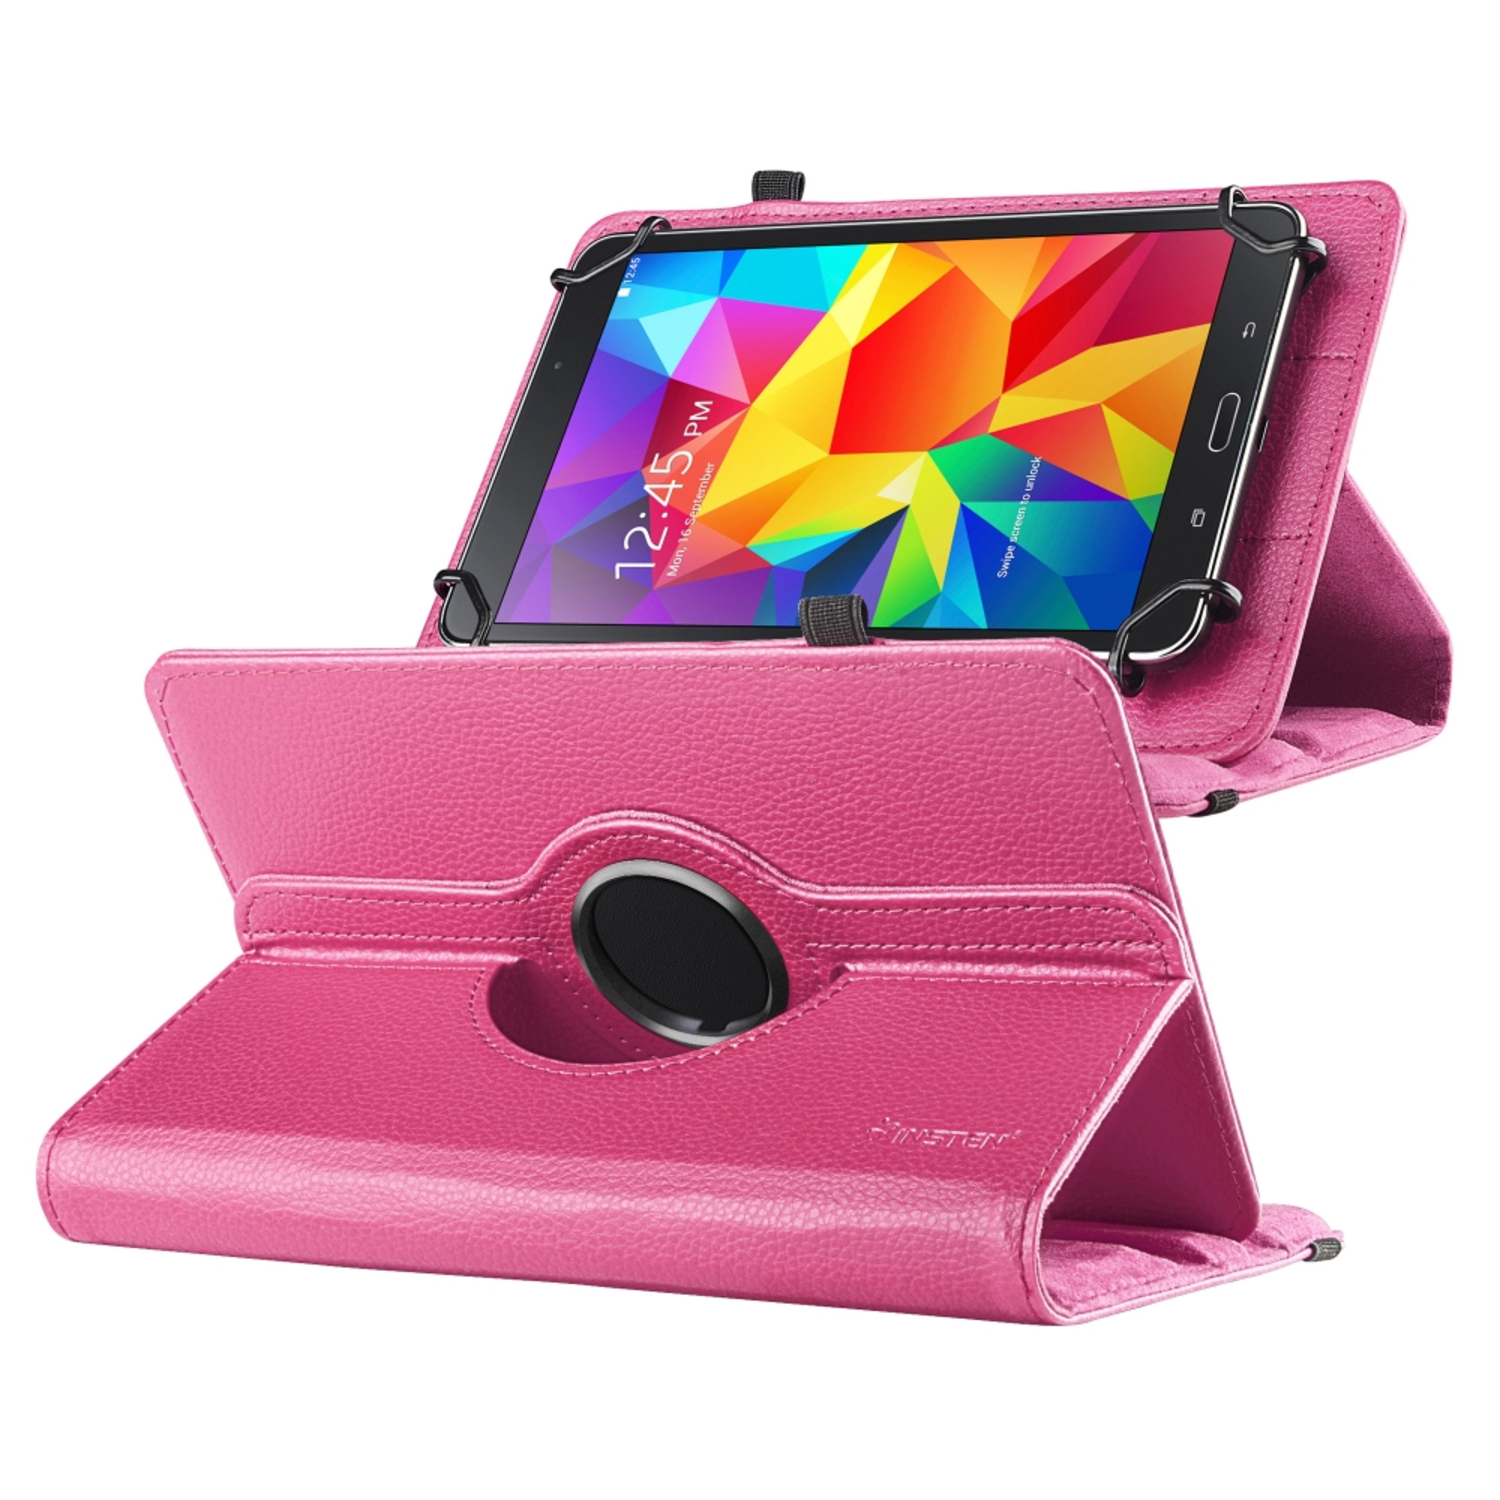 "Insten Universal Hot Pink 7"" Tablet Leather Case with Stand For Nextbook/RCA/Double Power/Visual Land/Ematic/Nobis/HP Stream/Samsung Galaxy Tab"